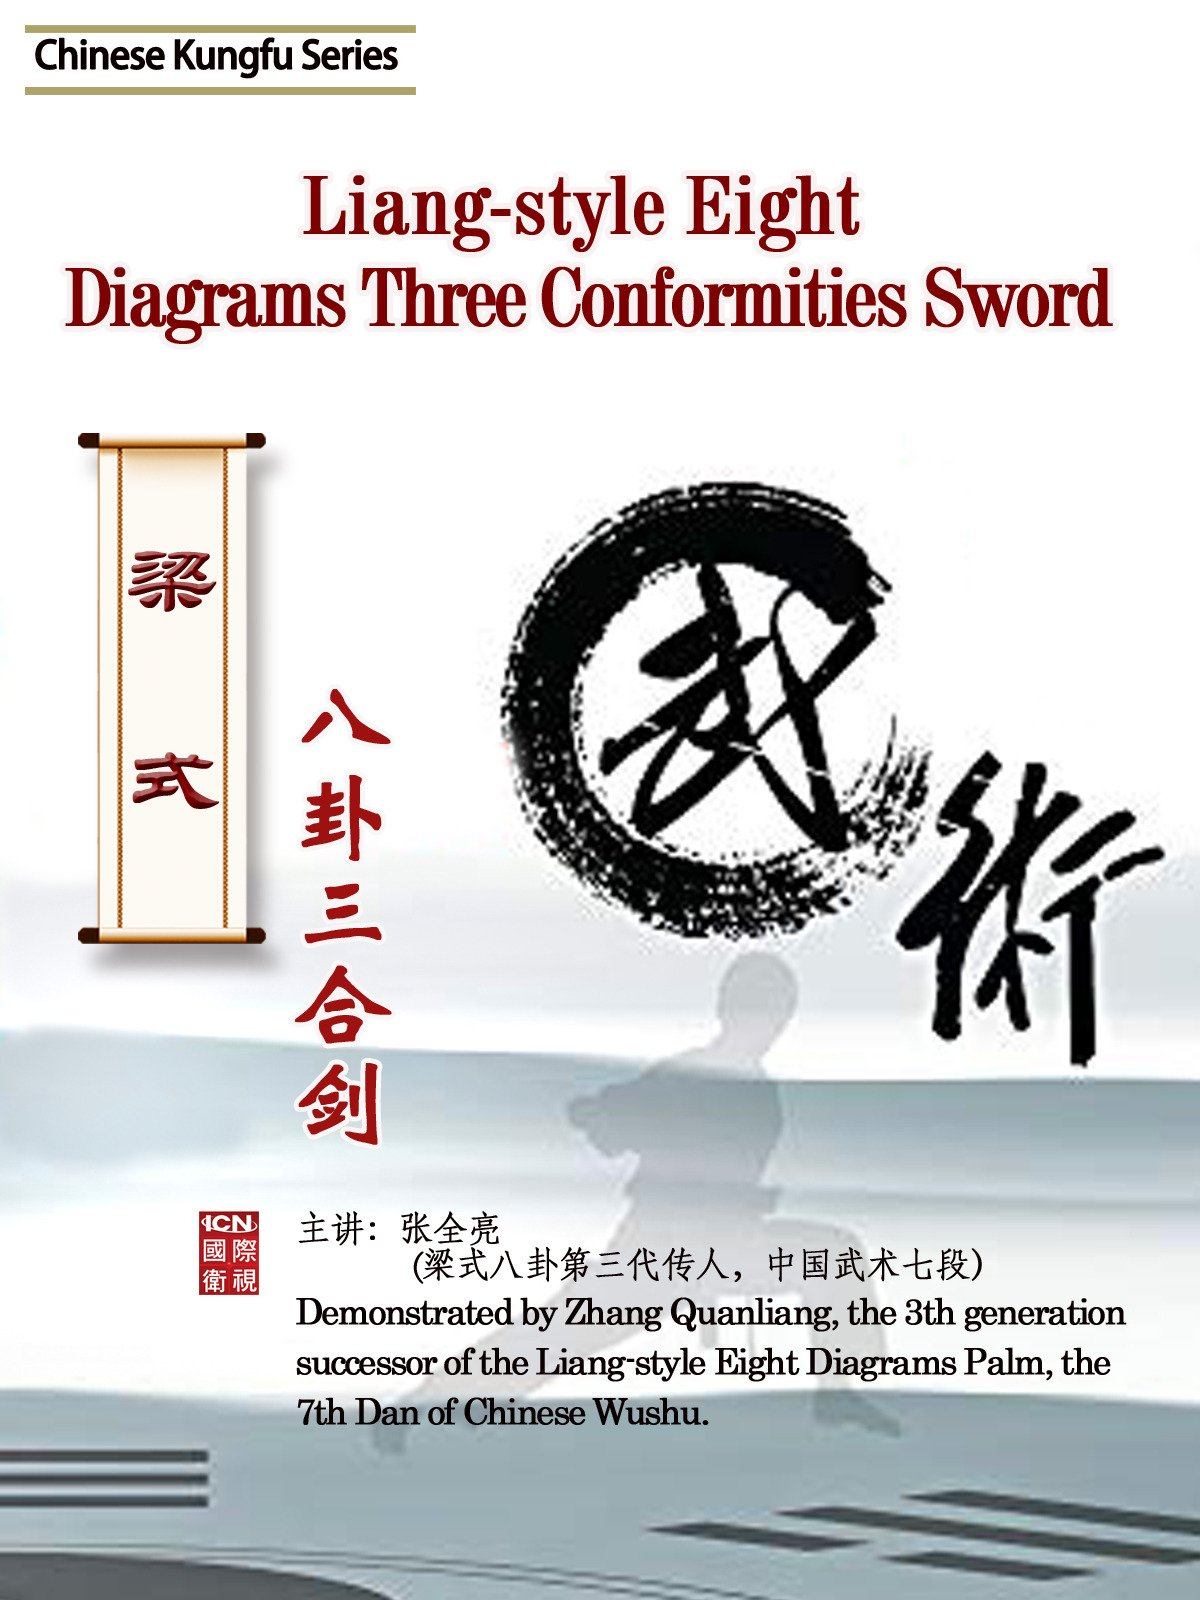 Liang-style Eight Diagrams Three Conformities Sword(Demonstrated by Zhang Quanliang)